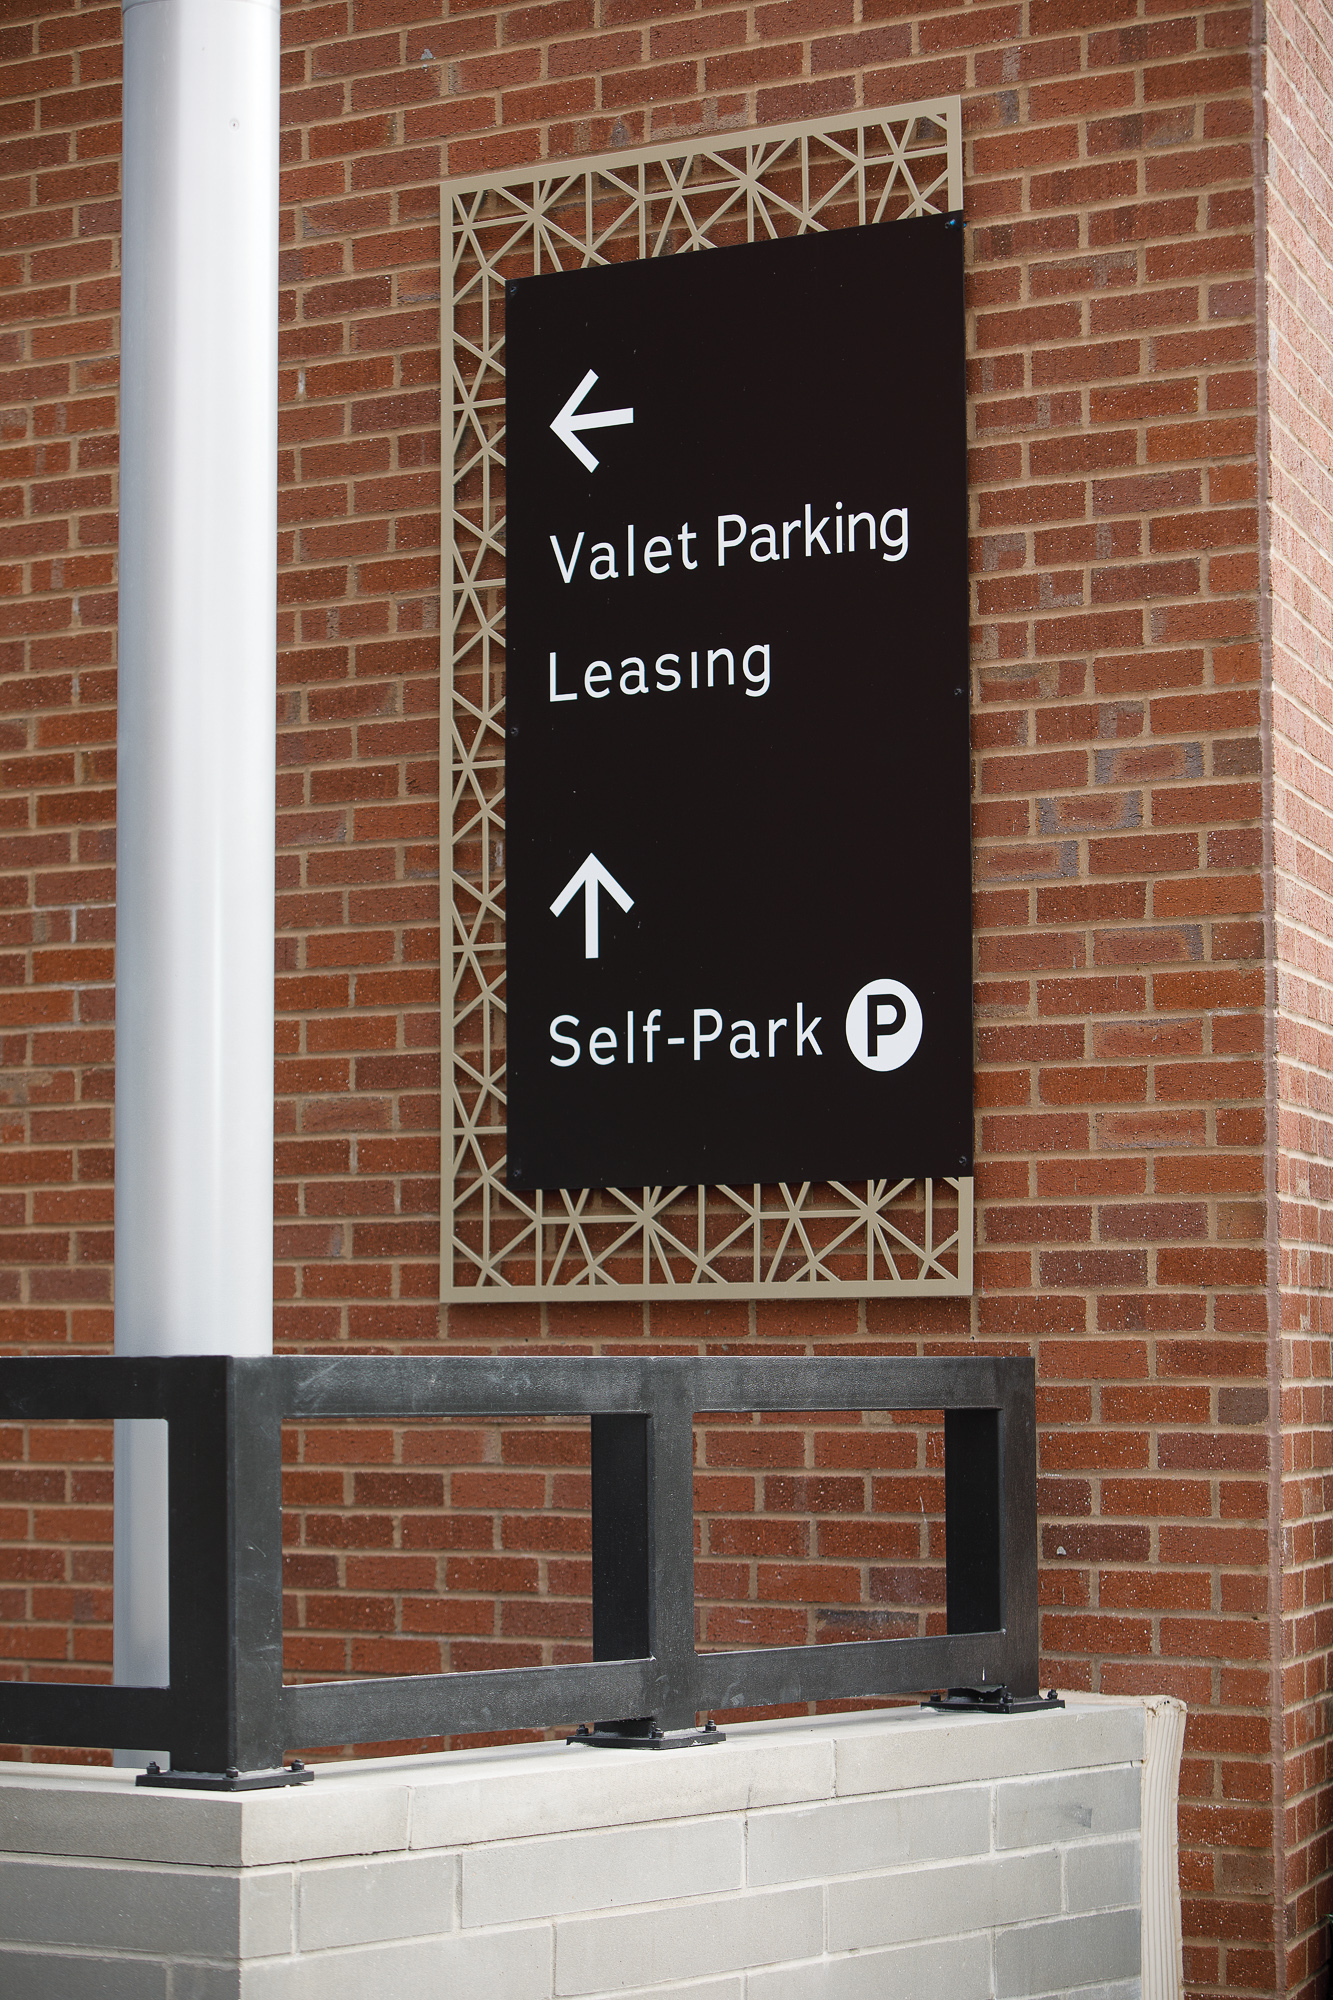 Vertis-Green-Hills_wayfinding-signage_valet-leasing-self park_MG_5868_small 2000 px.jpg